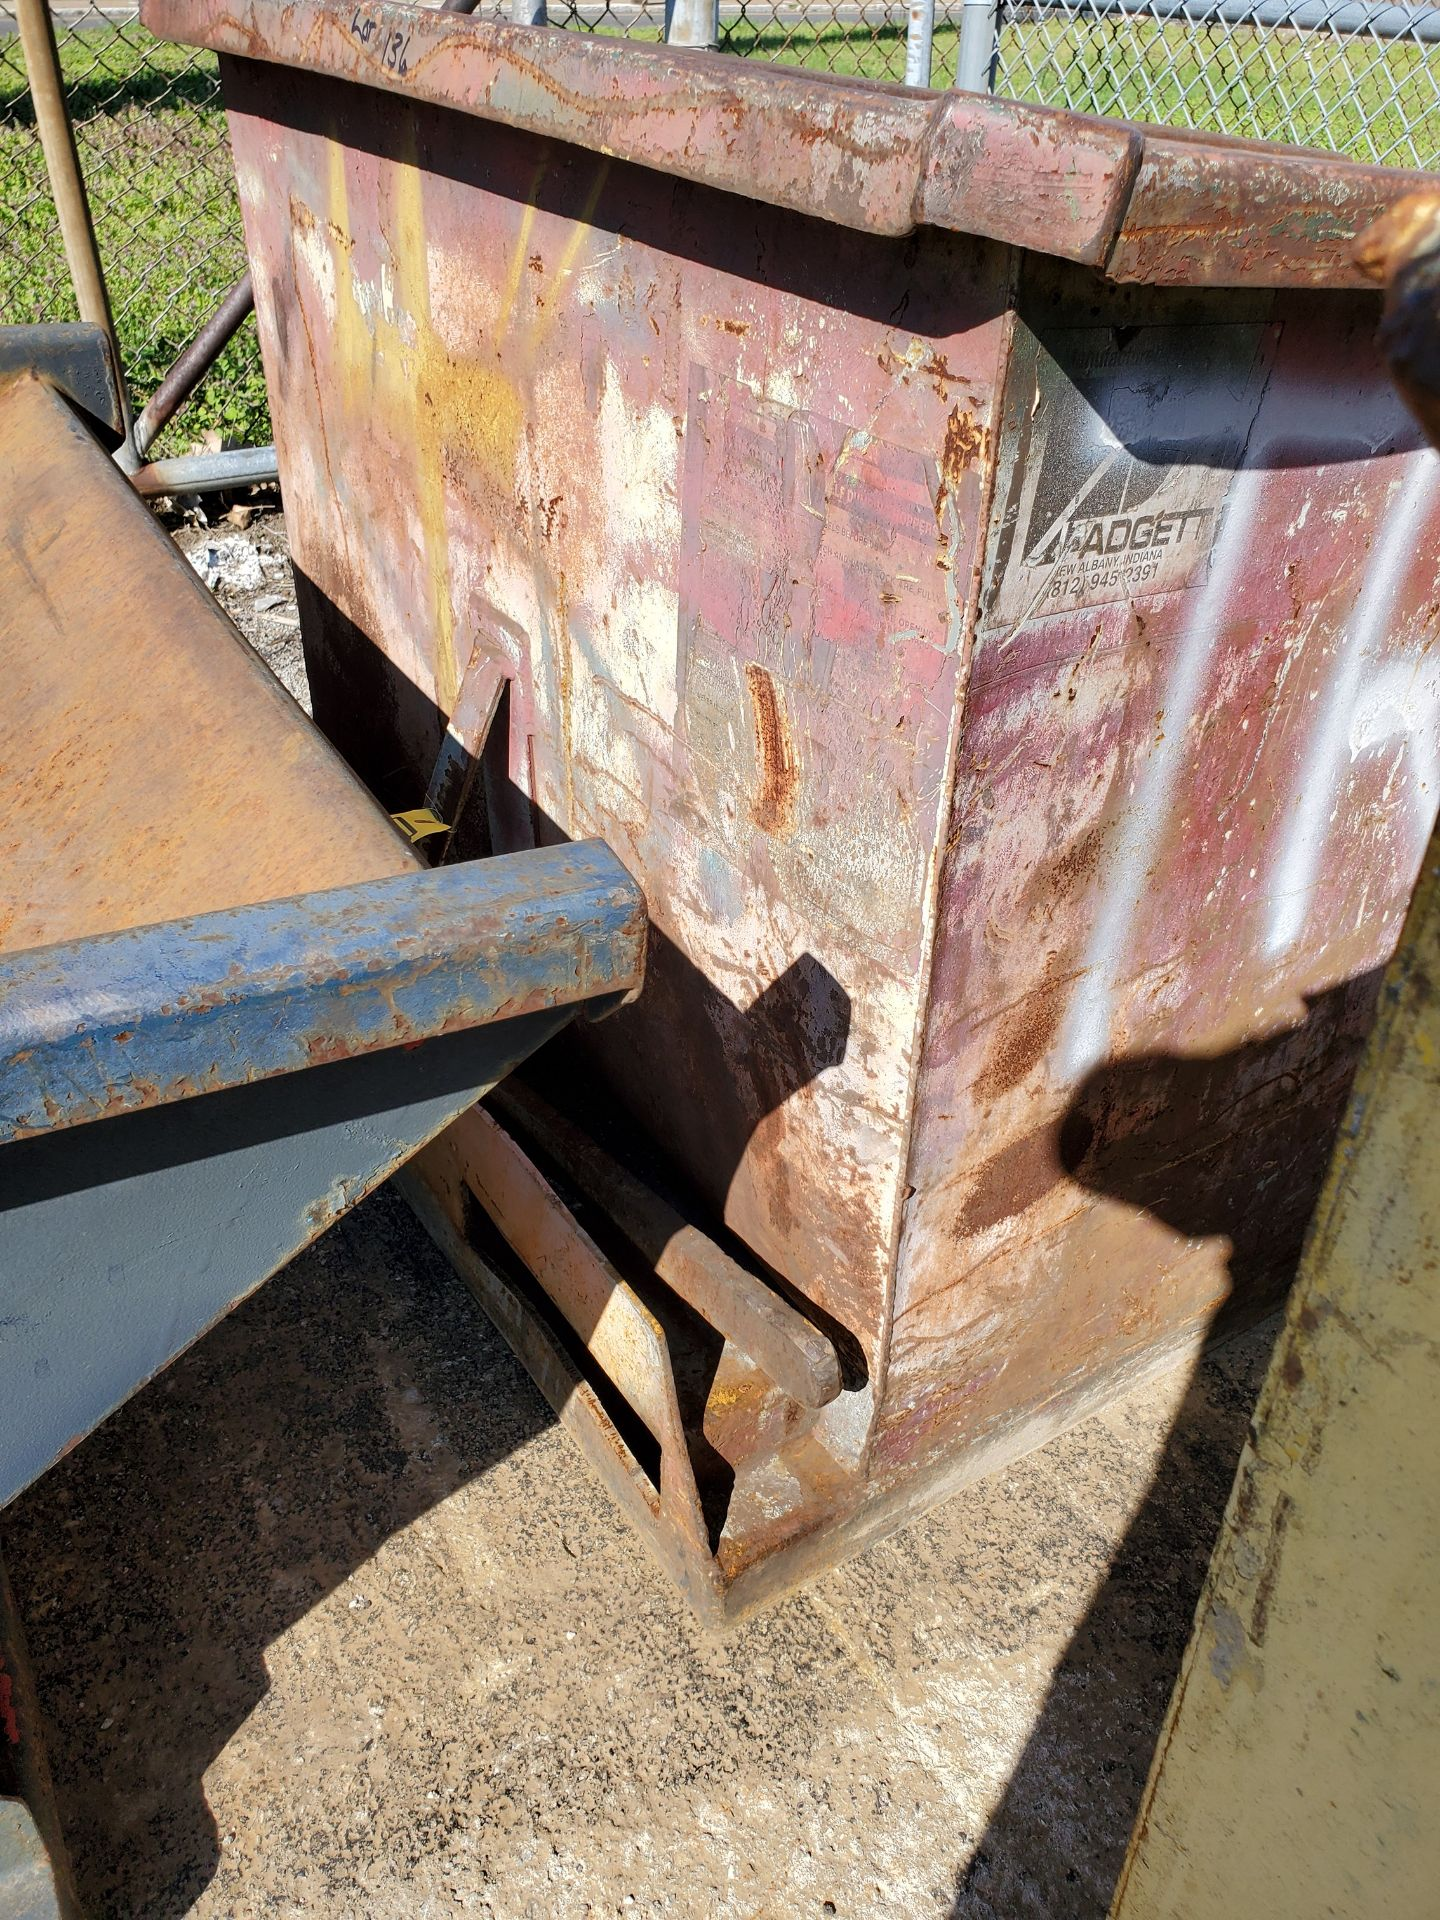 Lot 136 - 1 CU. YD. SELF-DUMPING HOPPER